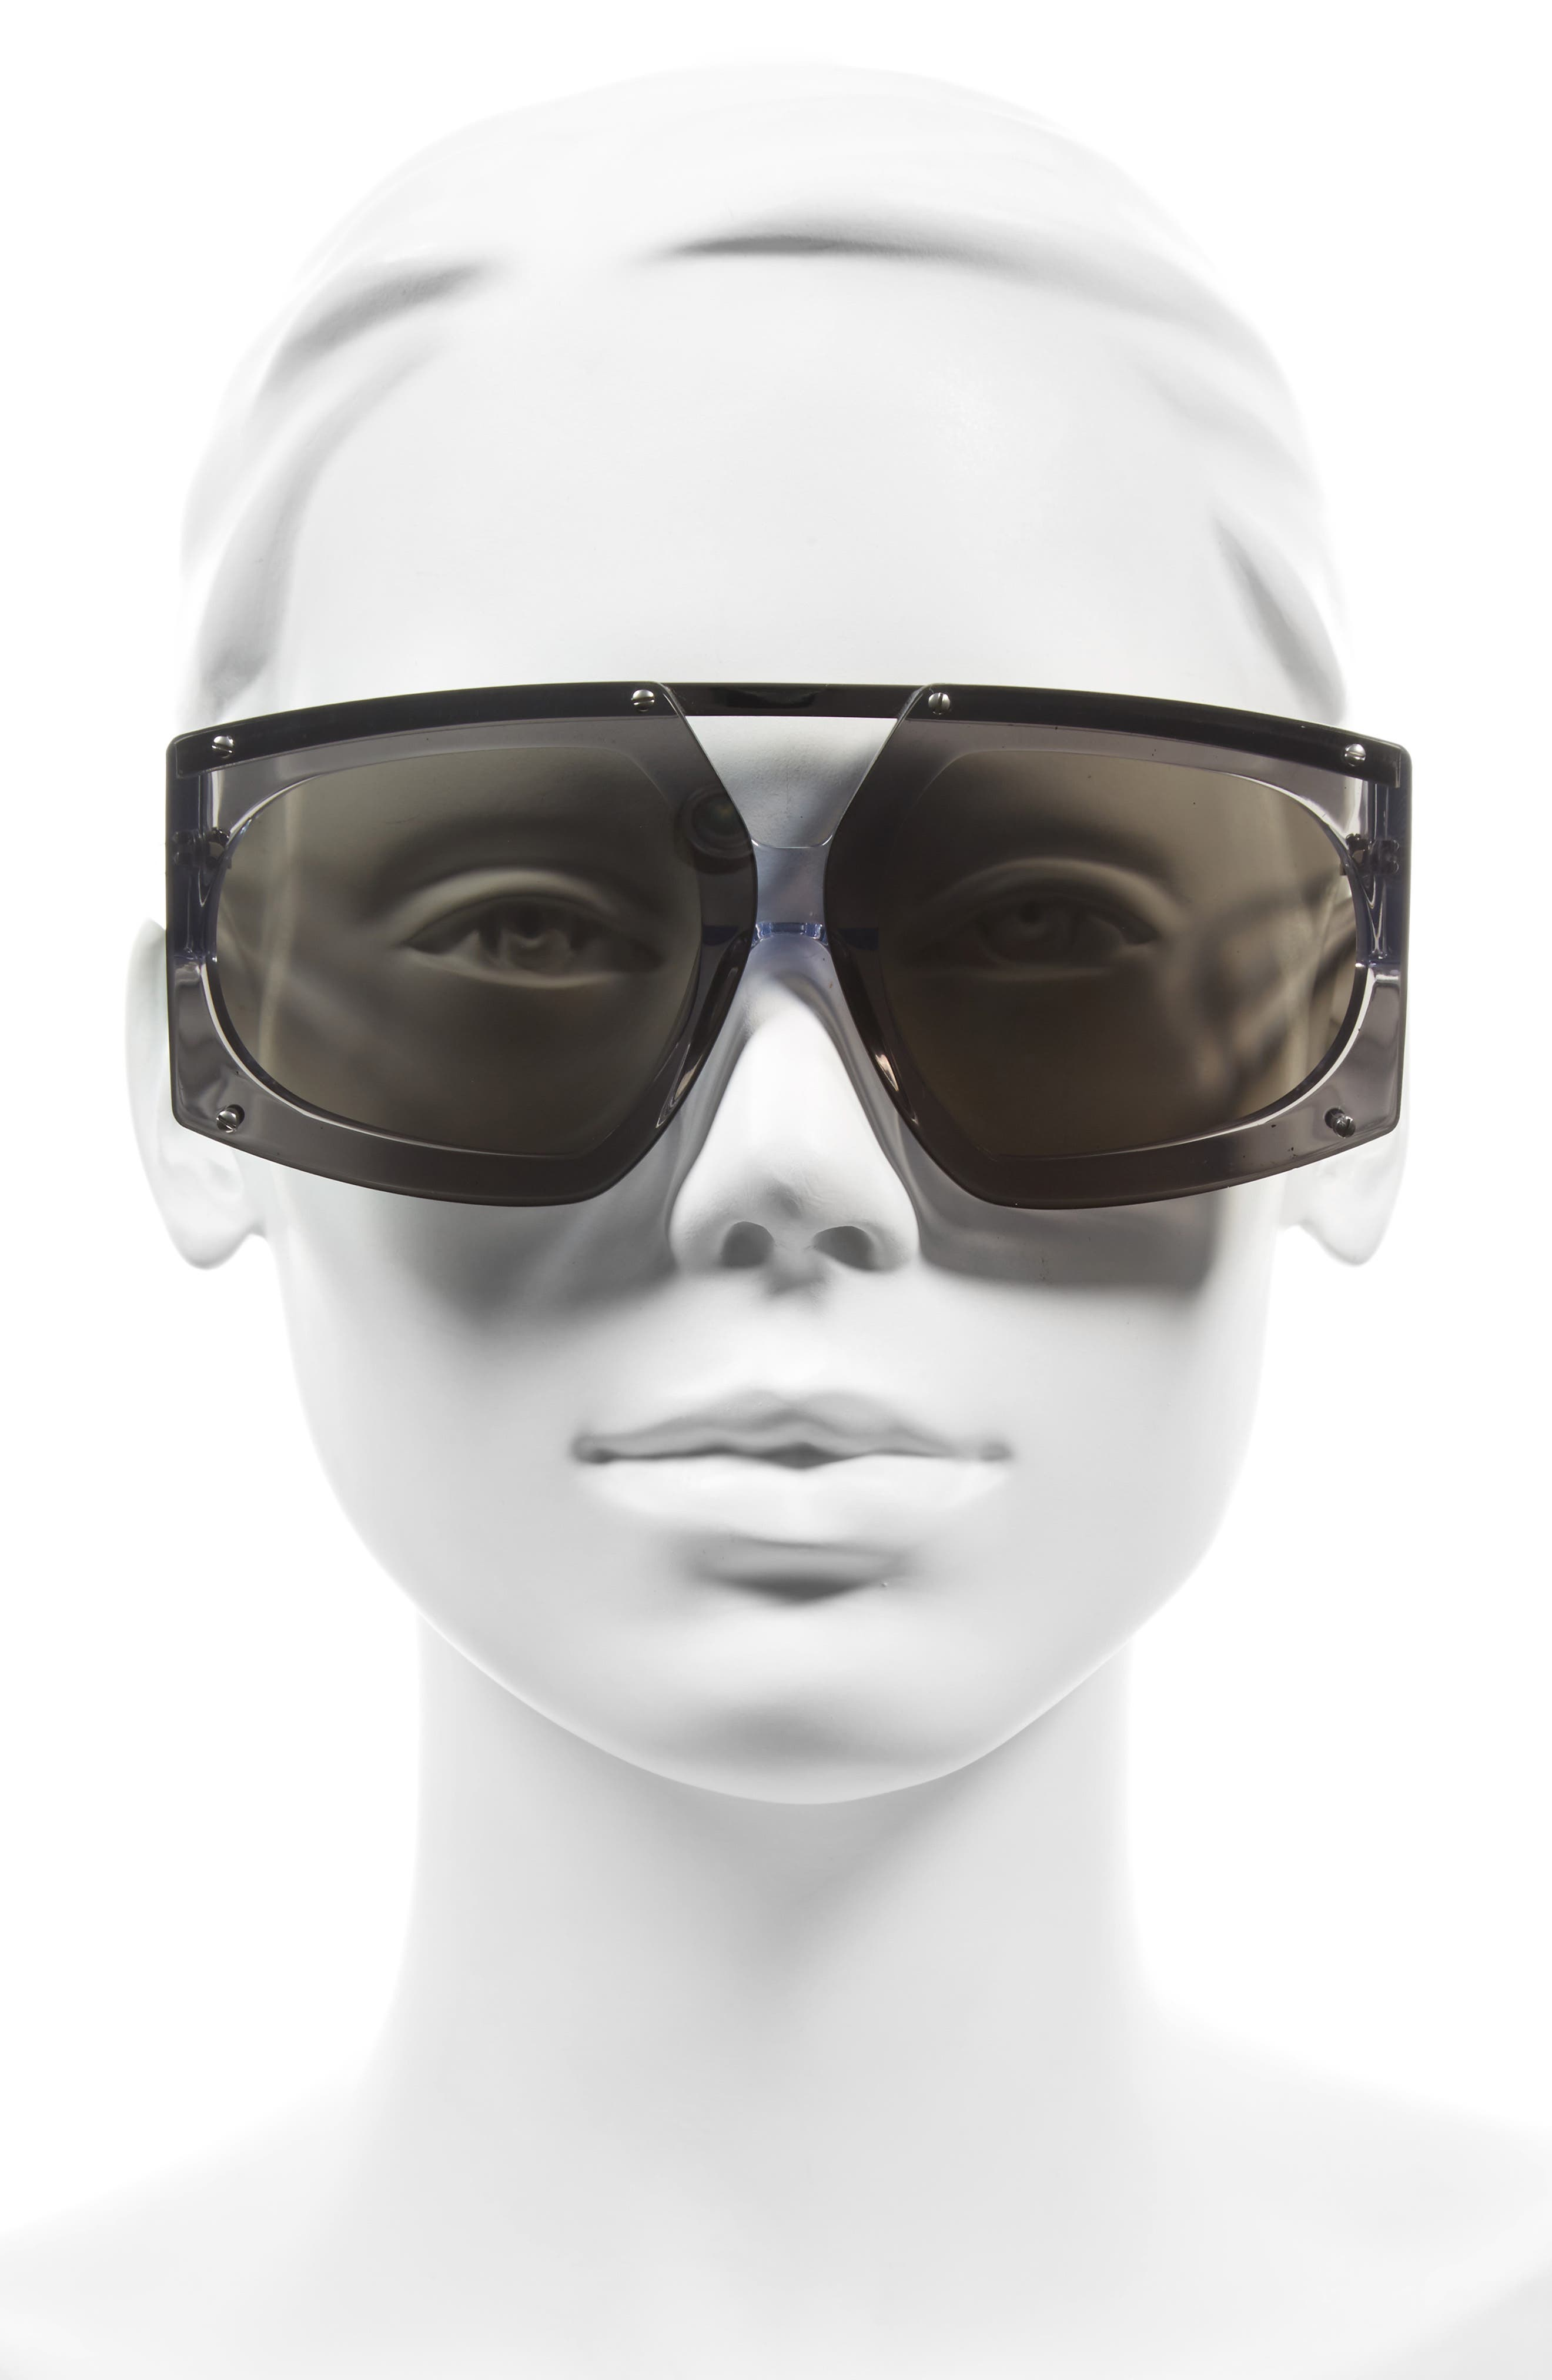 70mm Mirrored Oversized Sunglasses,                             Alternate thumbnail 2, color,                             Crystal Clear/ Silver